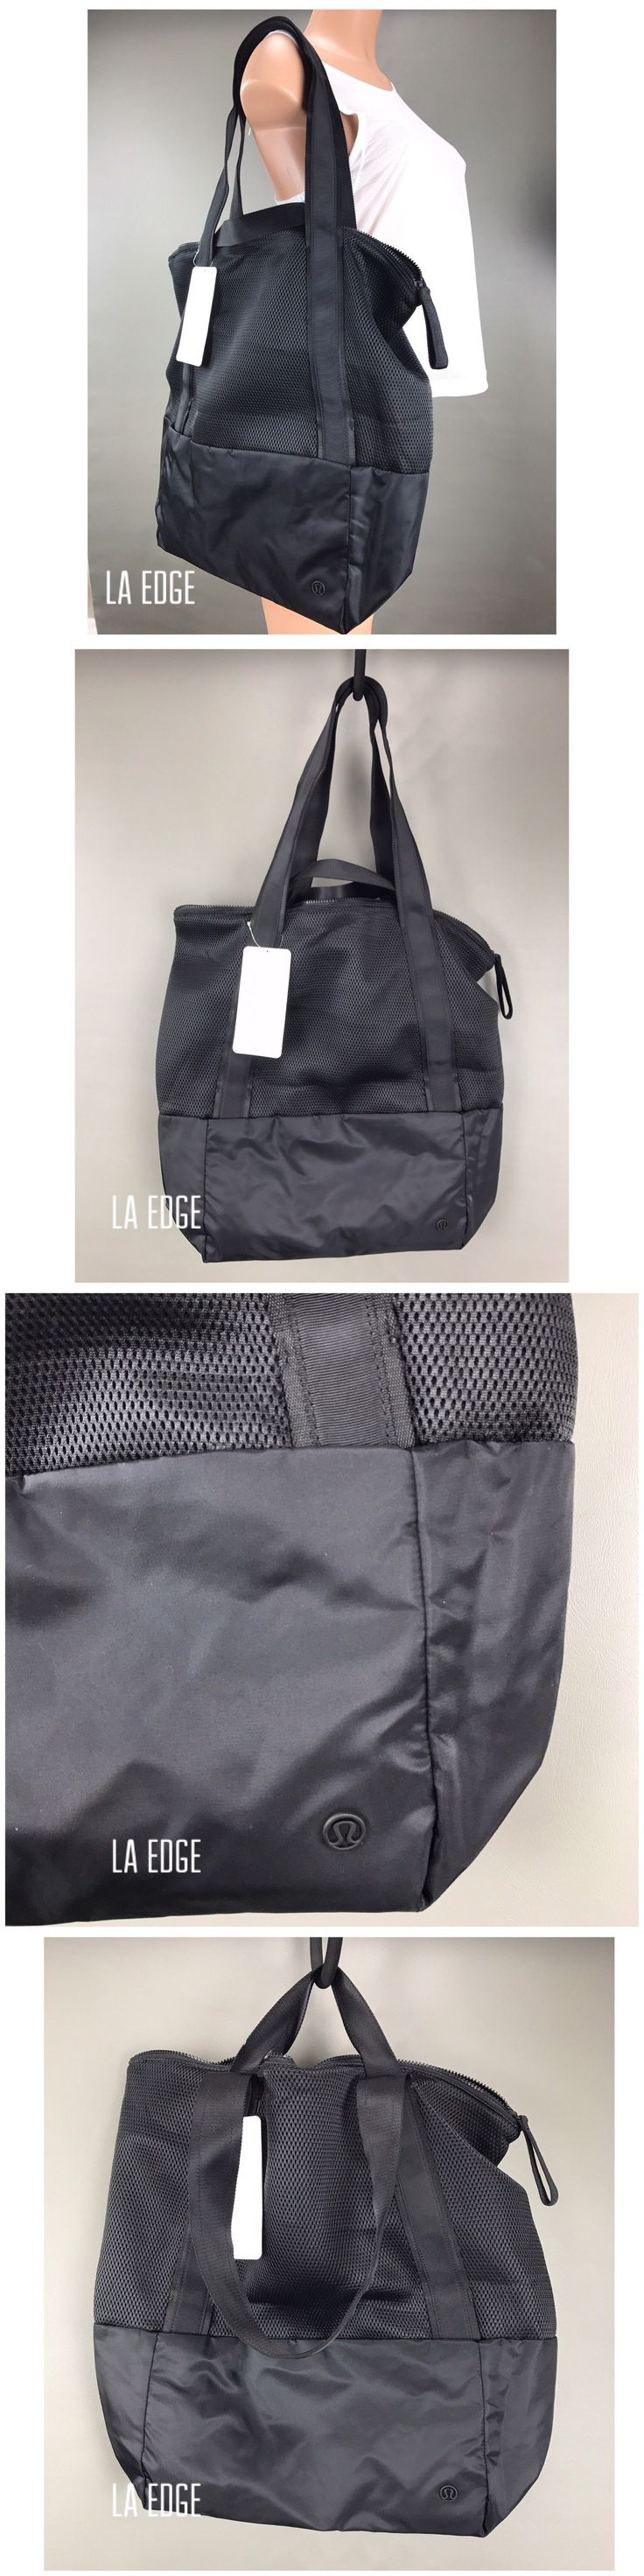 Gym Bags 68816: Lululemon Hot Mesh Tote Travel Large Bag Gym Yoga Mat Strap Ladies Ventilated -> BUY IT NOW ONLY: $72 on eBay!